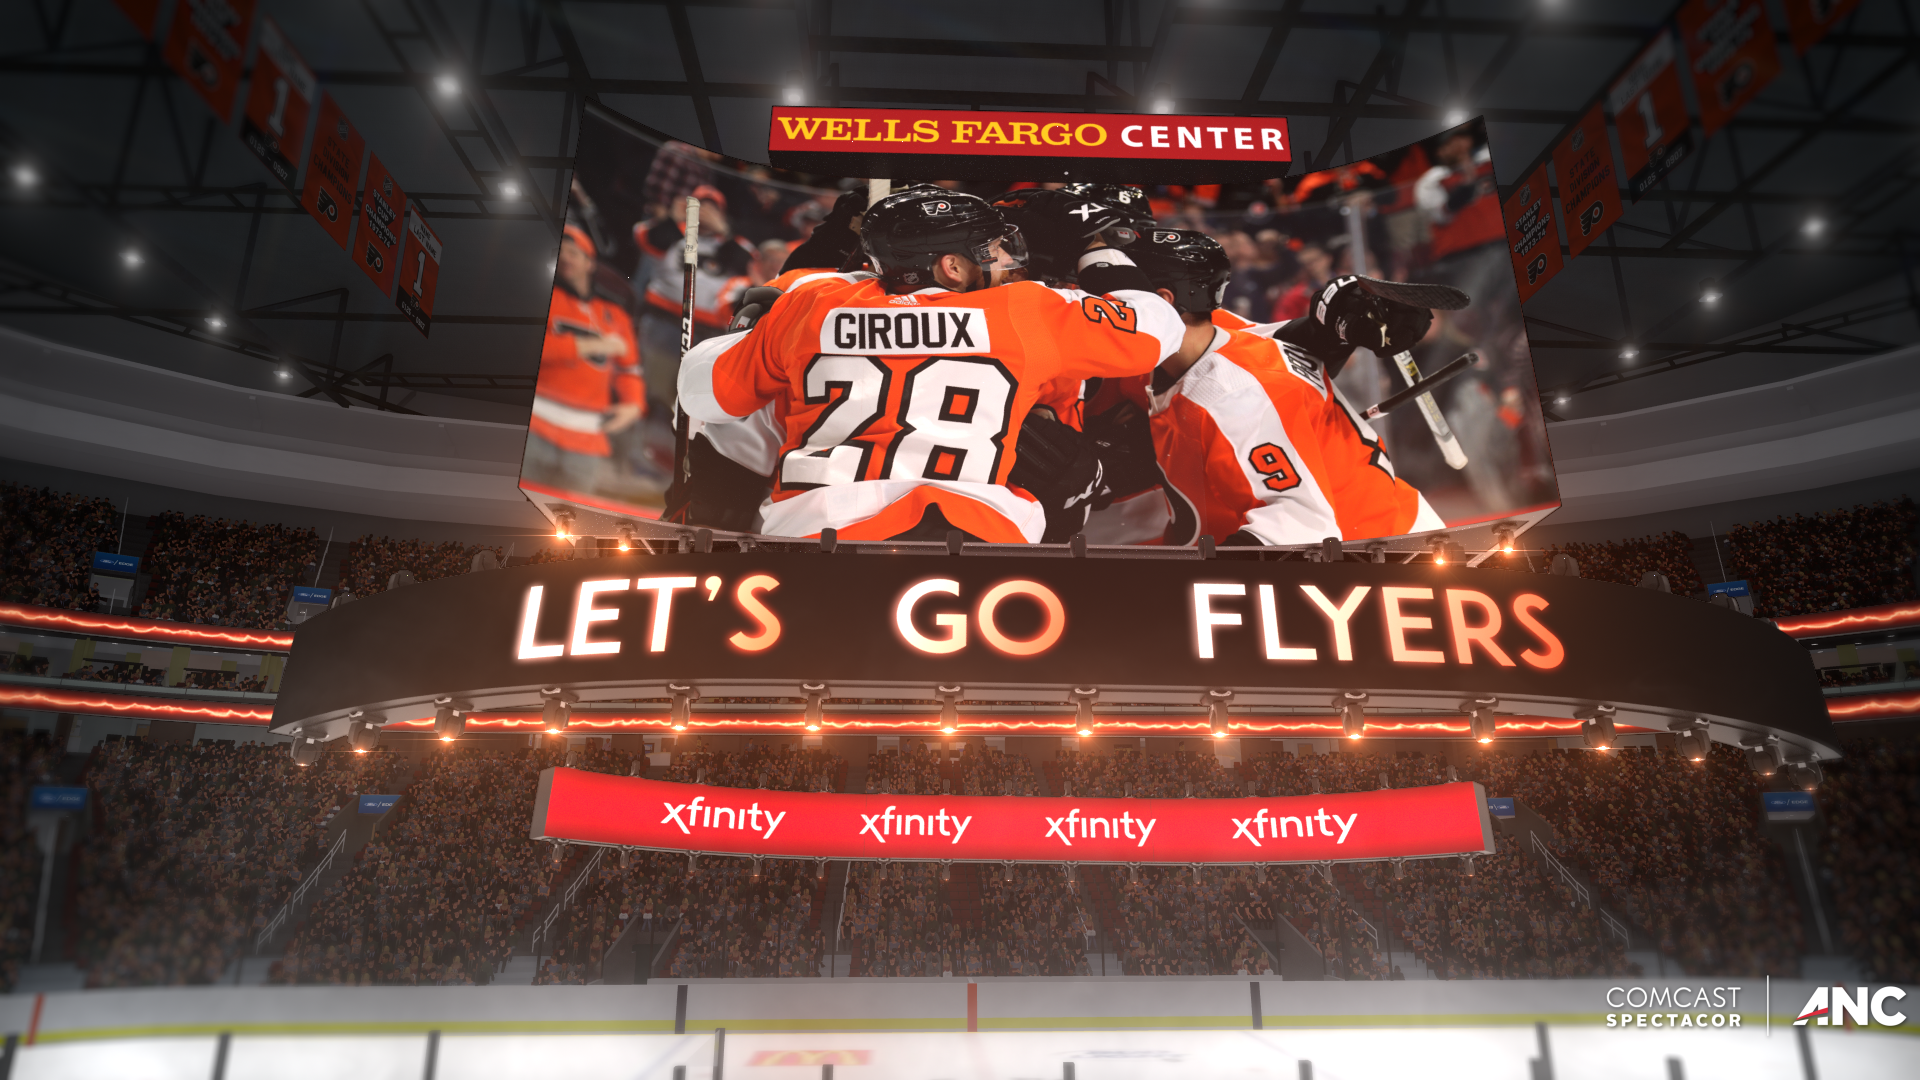 At the Rink: Philadelphia Flyers Flex Potential of 4K Kinetic Centerhung as Fans Return to Wells Fargo Center - Game pres team experimenting with new looks and effects for board that debuted in 2019